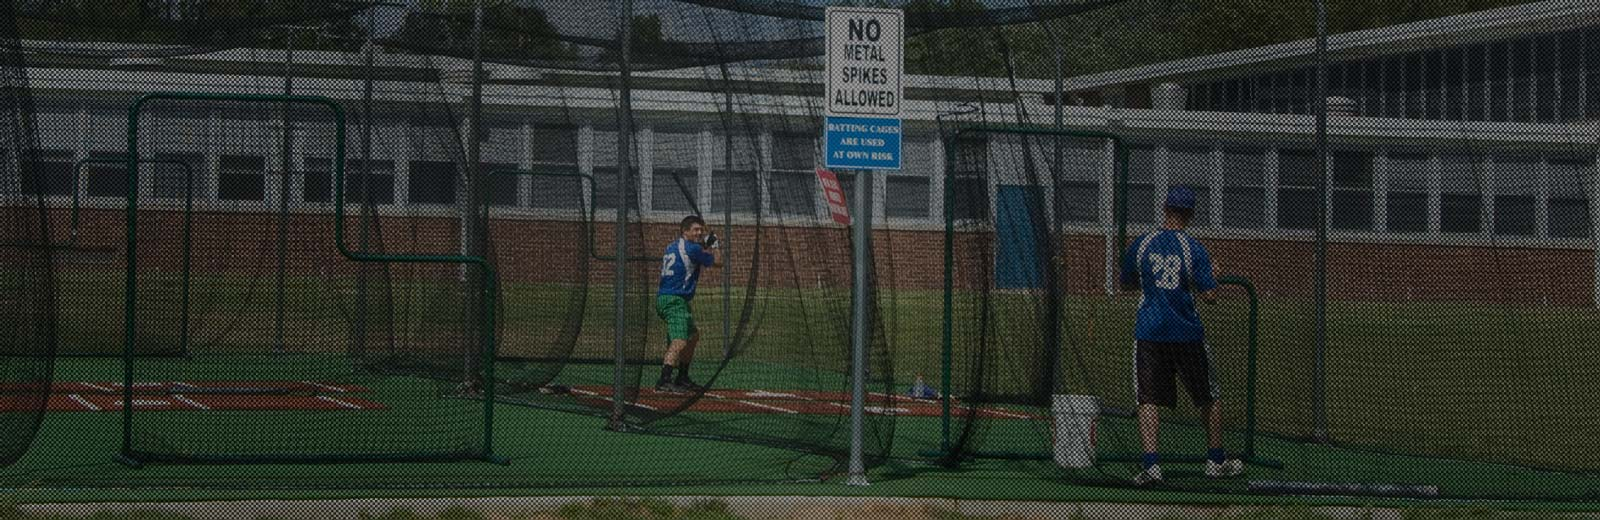 Artificial Turf For Baseball & Softball Batting Cages